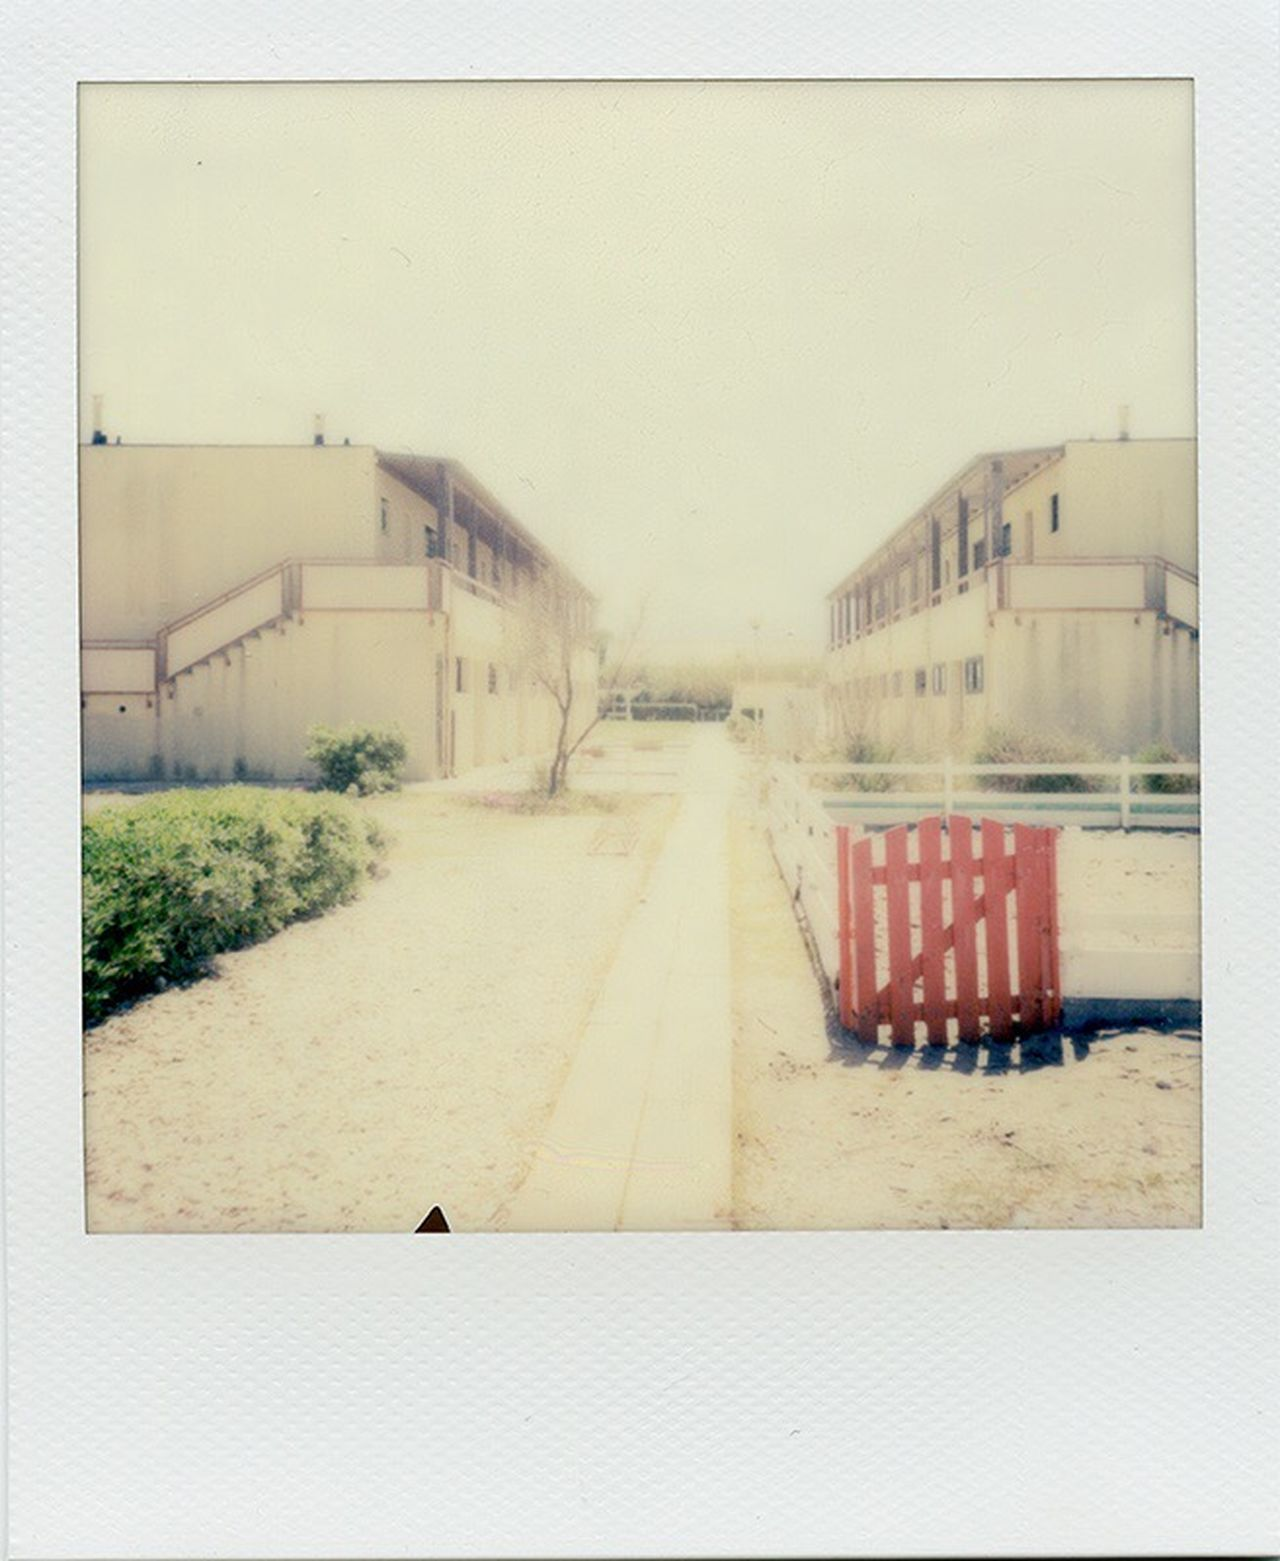 Fano Marche Italy Italia Polaroid Impossible Project Impossible SX70 Seaside Sea Seascape Travel Travelling Check This Out Hanging Out Hello World Relaxing Taking Photos Enjoying Life Analogue Photography EyeEm Best Shots EyeEm Best Edits EyeEm Gallery Colors Giampaolomajonchi.it